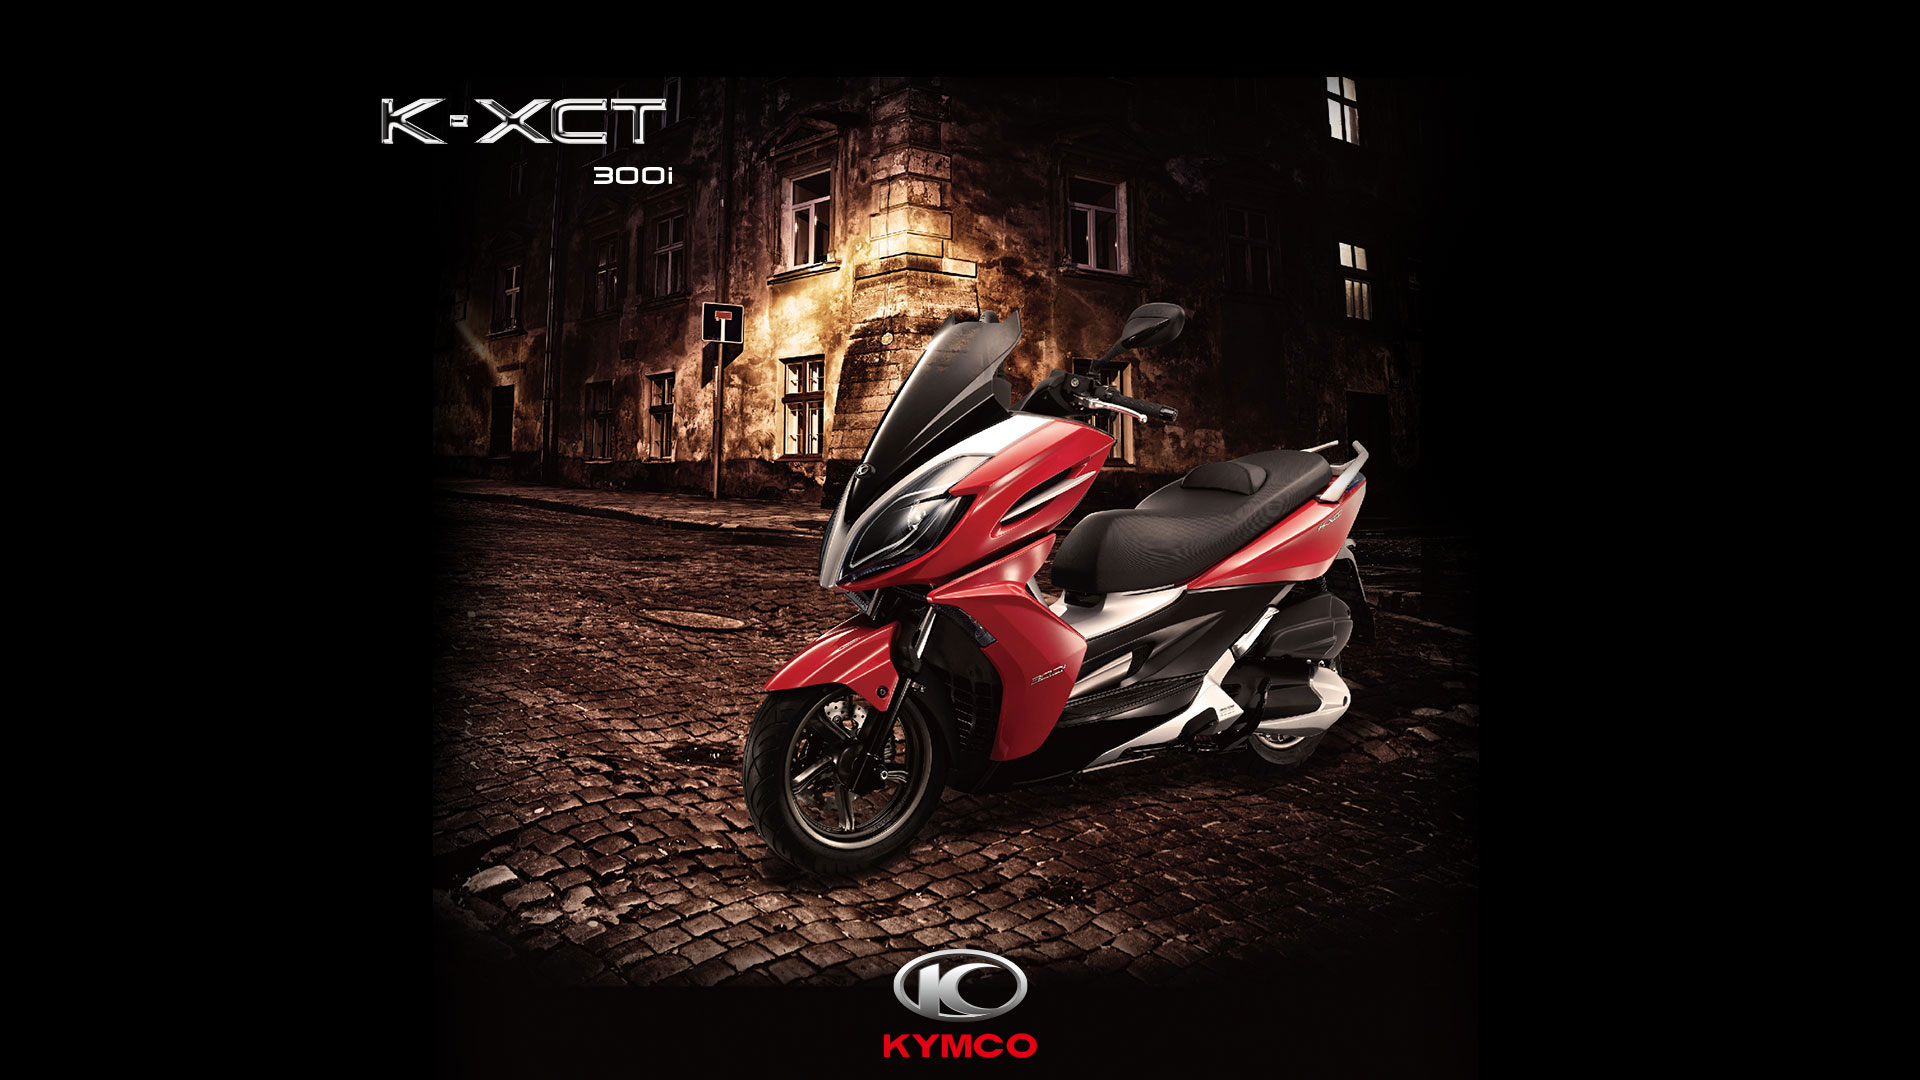 kymco k xct 300i 2014 2015 autoevolution. Black Bedroom Furniture Sets. Home Design Ideas